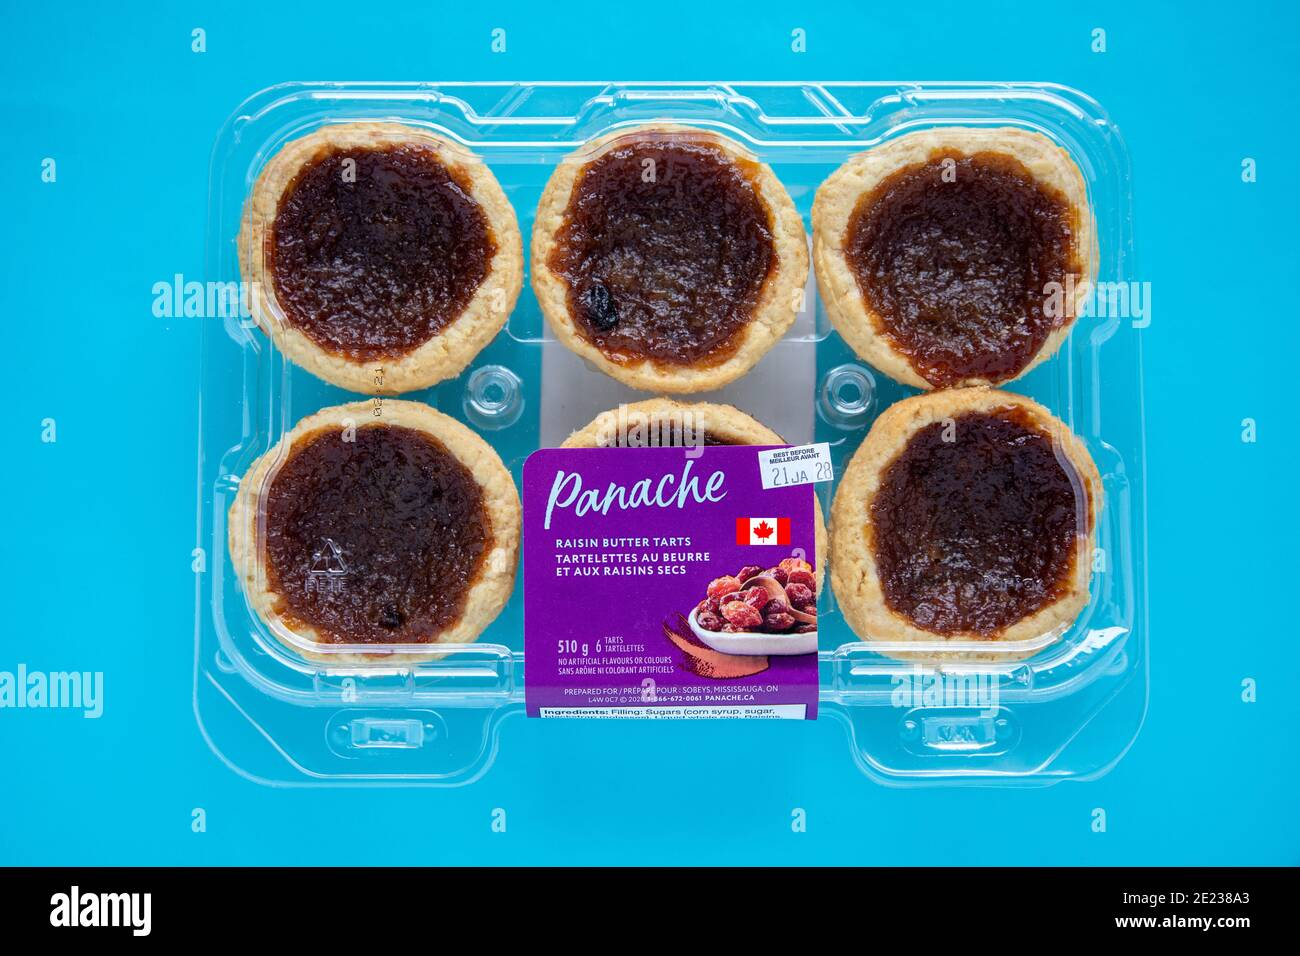 package-of-supermarket-brand-sobeys-canadian-butter-and-raisin-tarts-a-speciality-dessert-of-canada-2E238A3.jpg